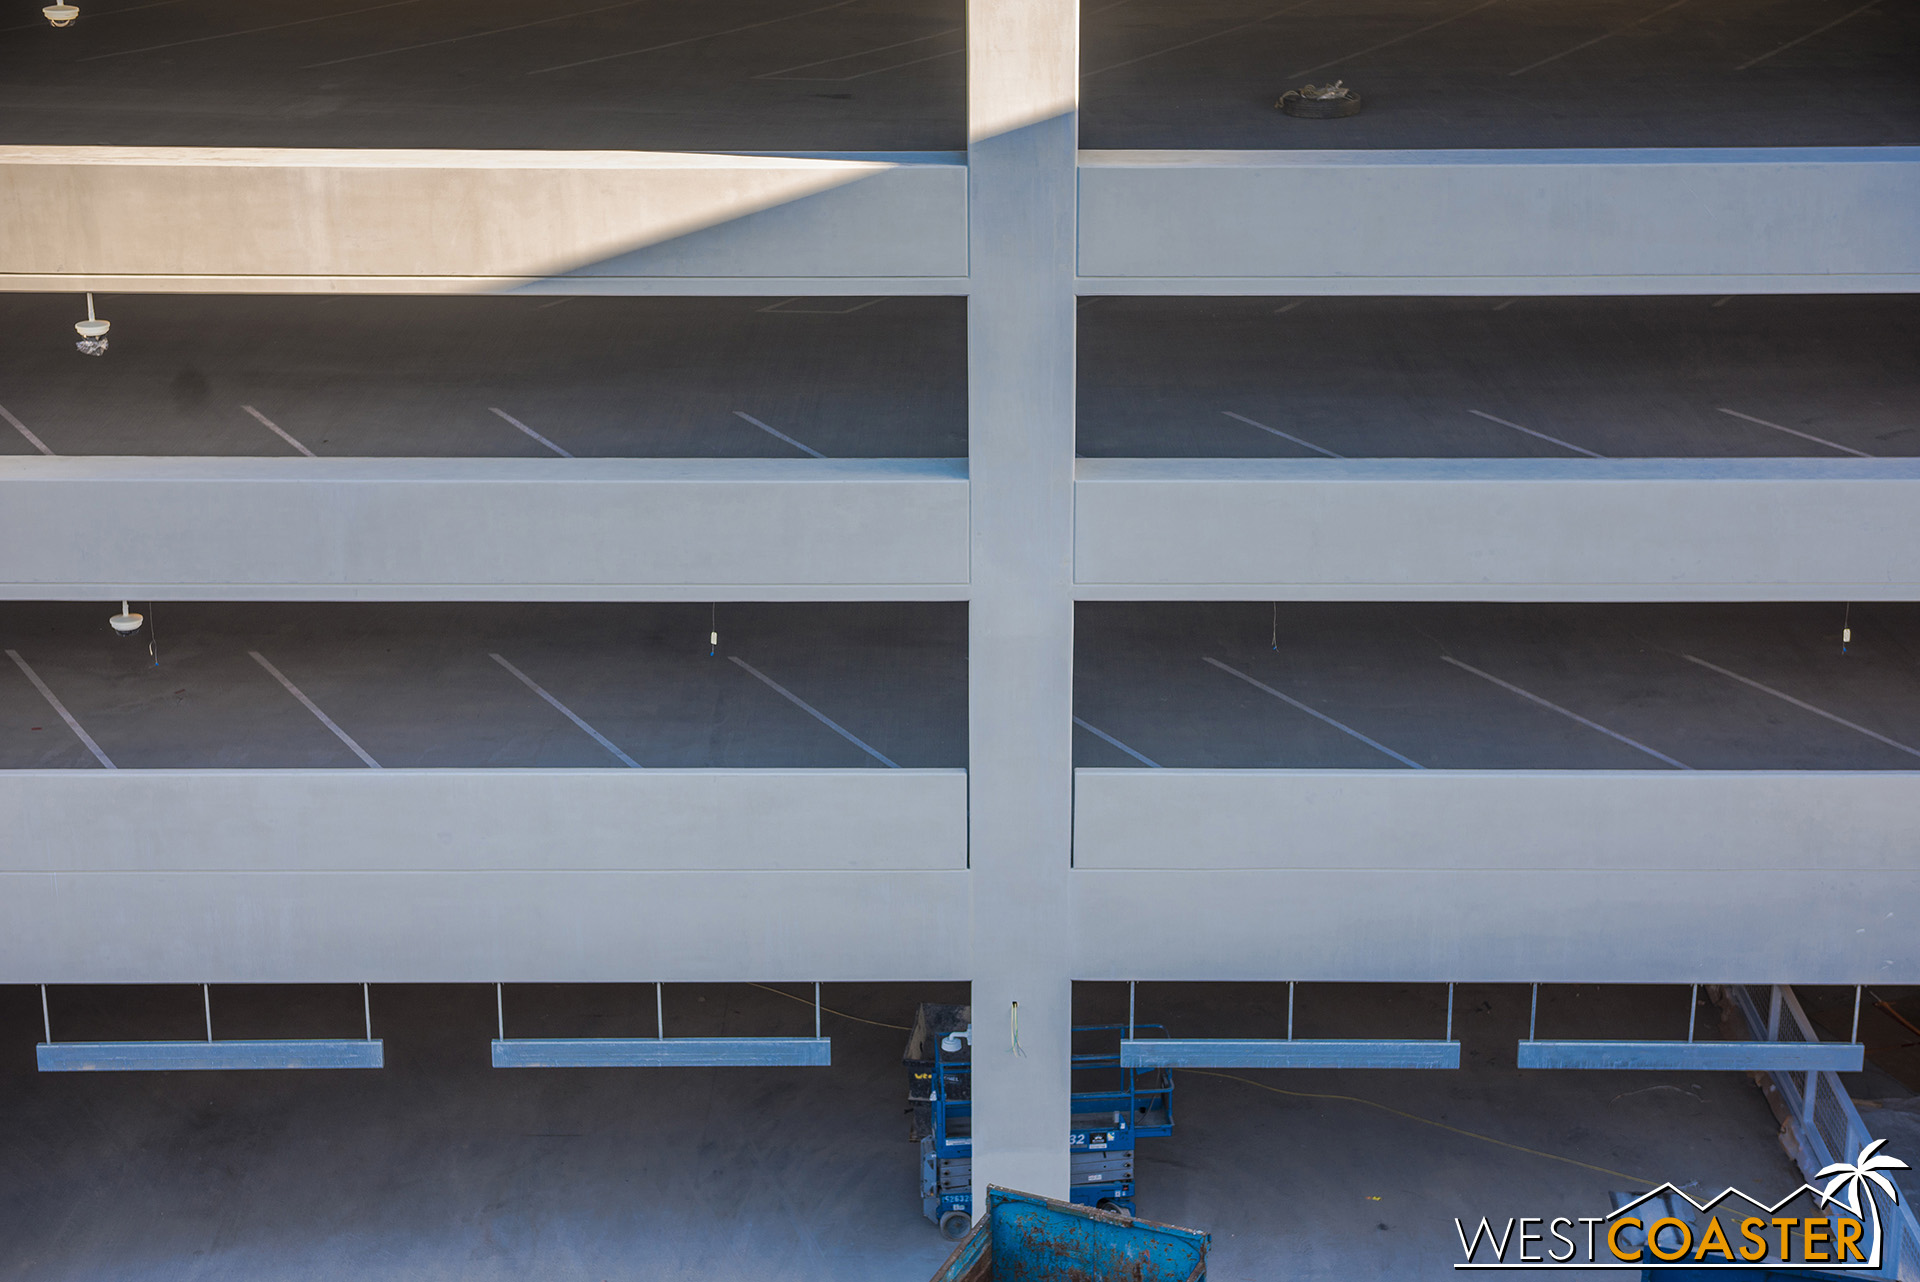 The orientation of the parking aisles looks to be the same in Pixar Pals as it is in Mickey and Friends.